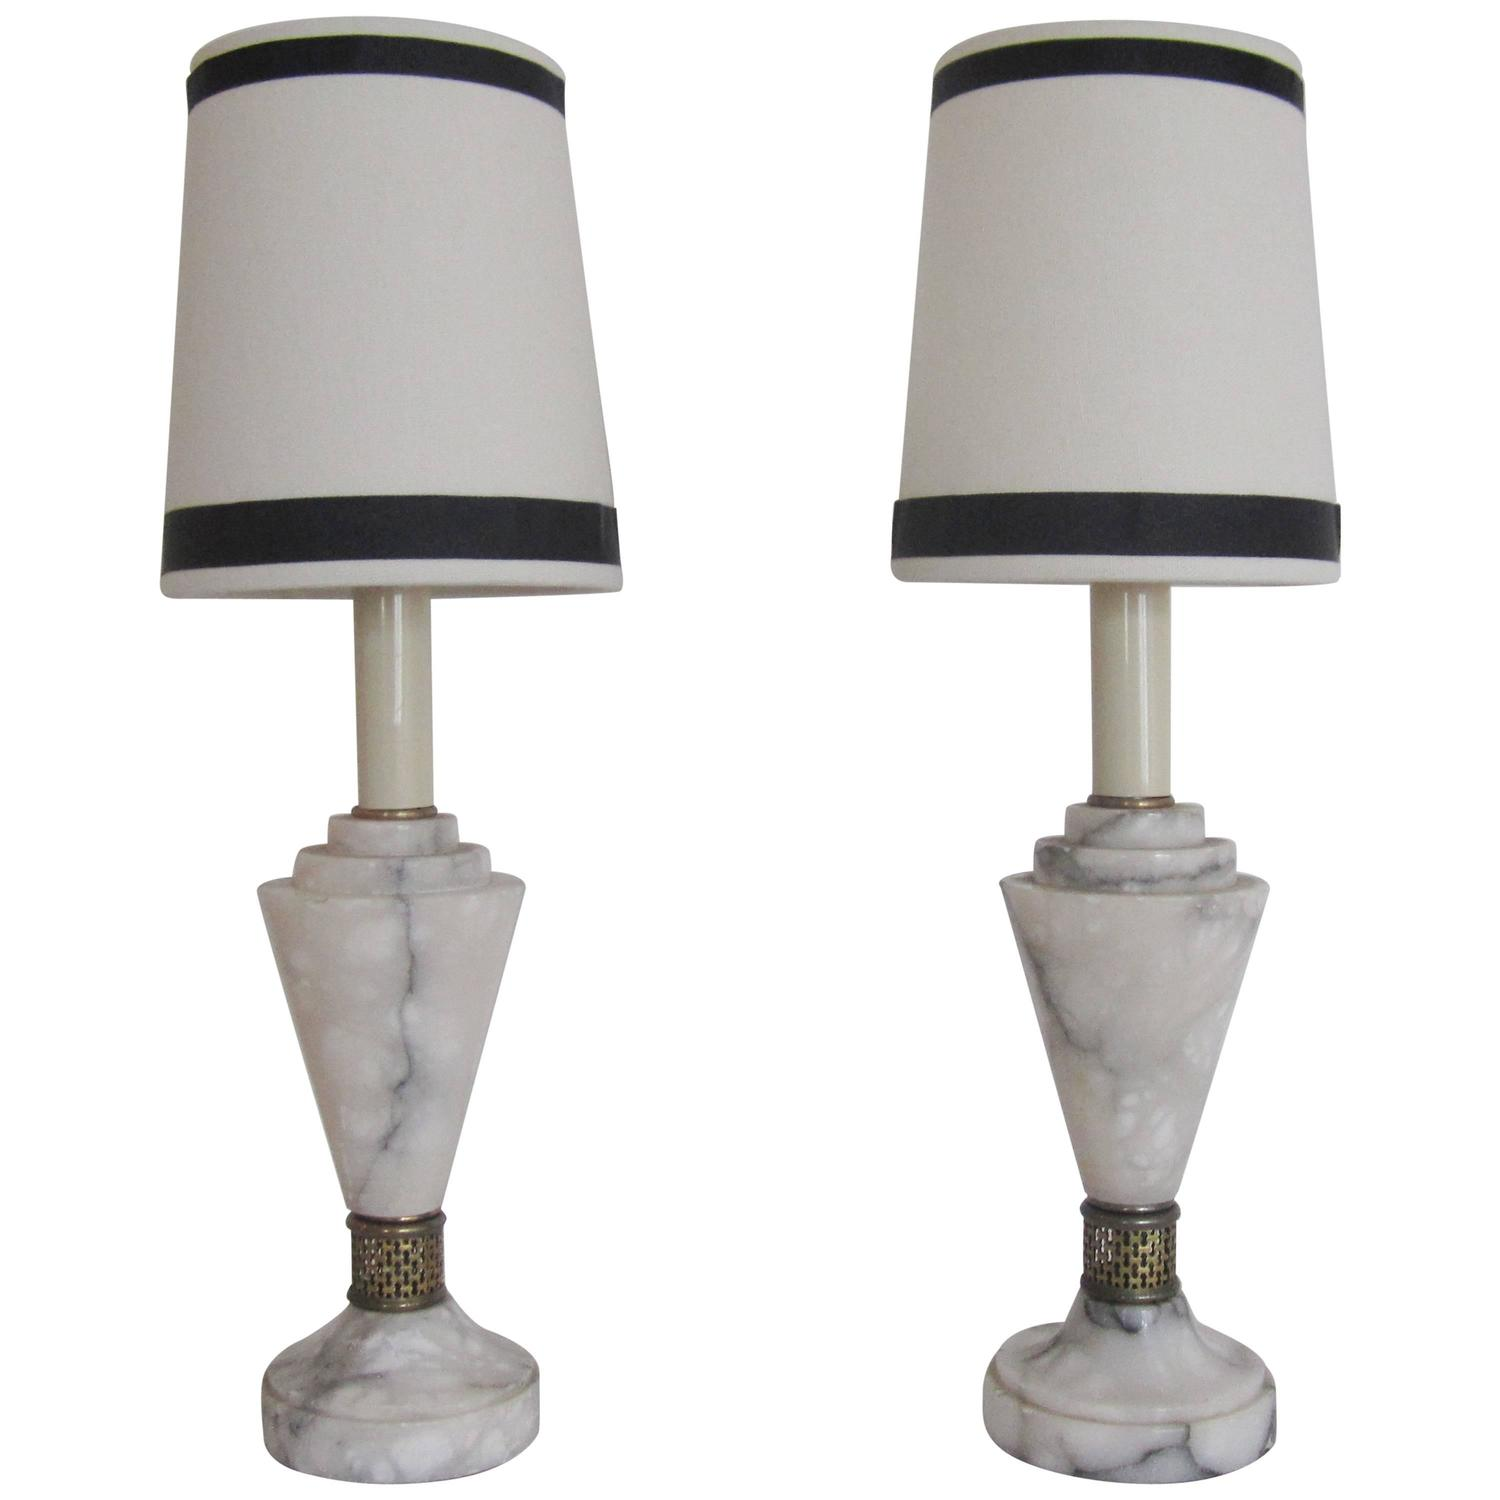 Modern glass table lamp - Pair French Modern Art Deco Solid White Carrara Marble Table Lamps For Sale At 1stdibs